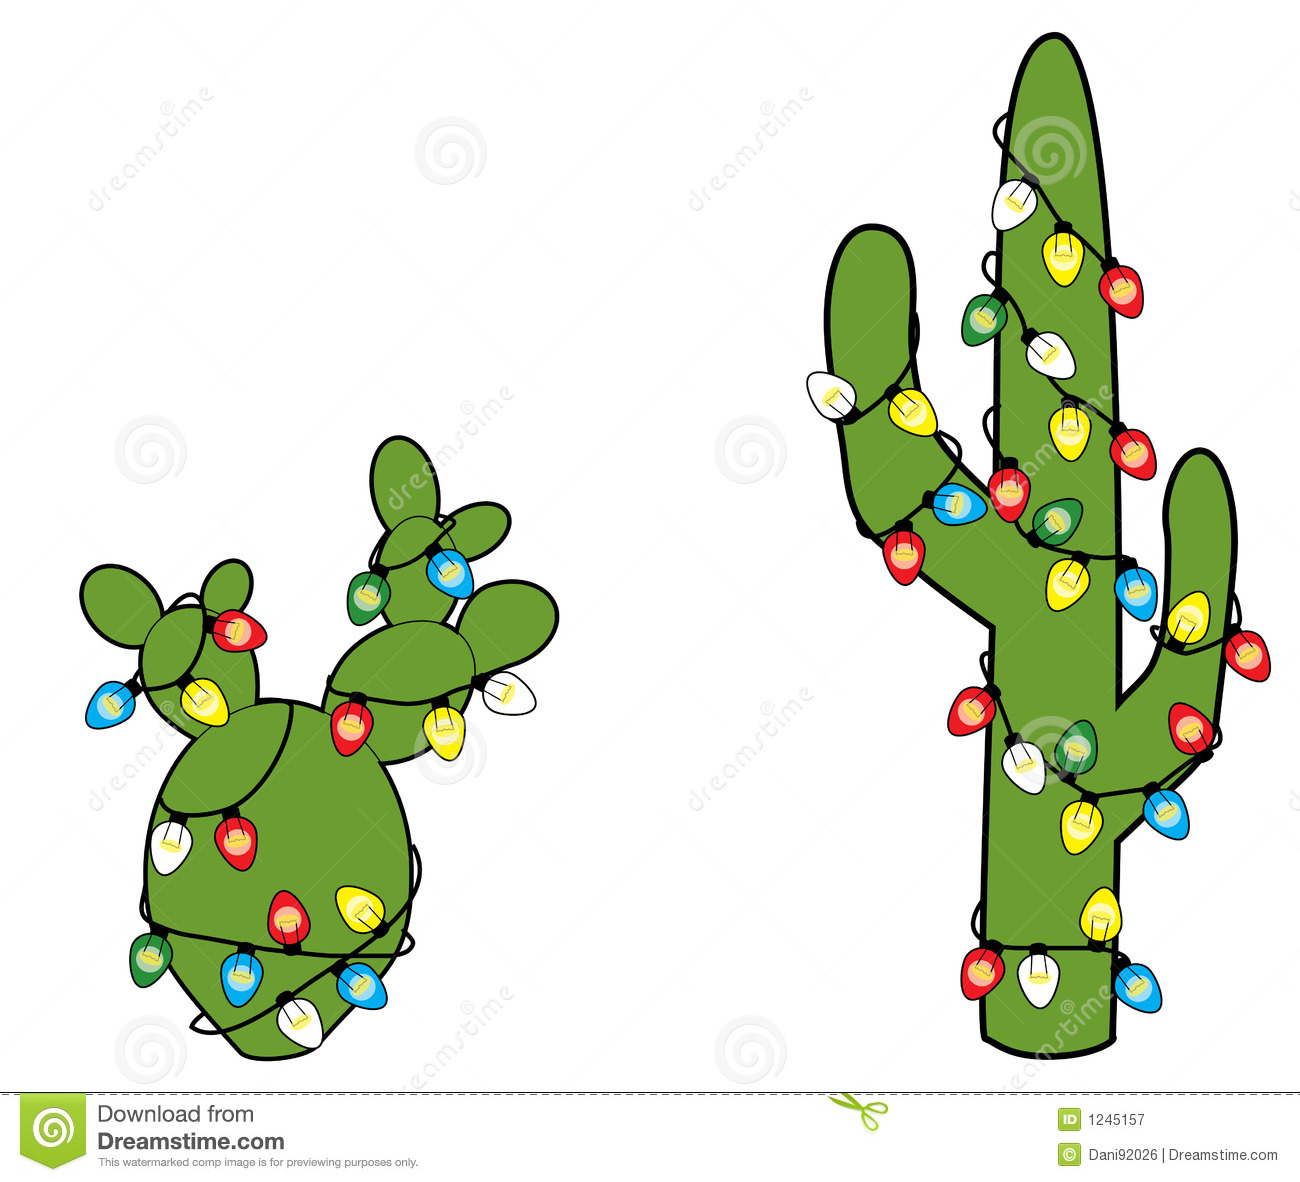 Cactus Decorated For Christmas: Christmas Cacti Royalty Free Stock Photography